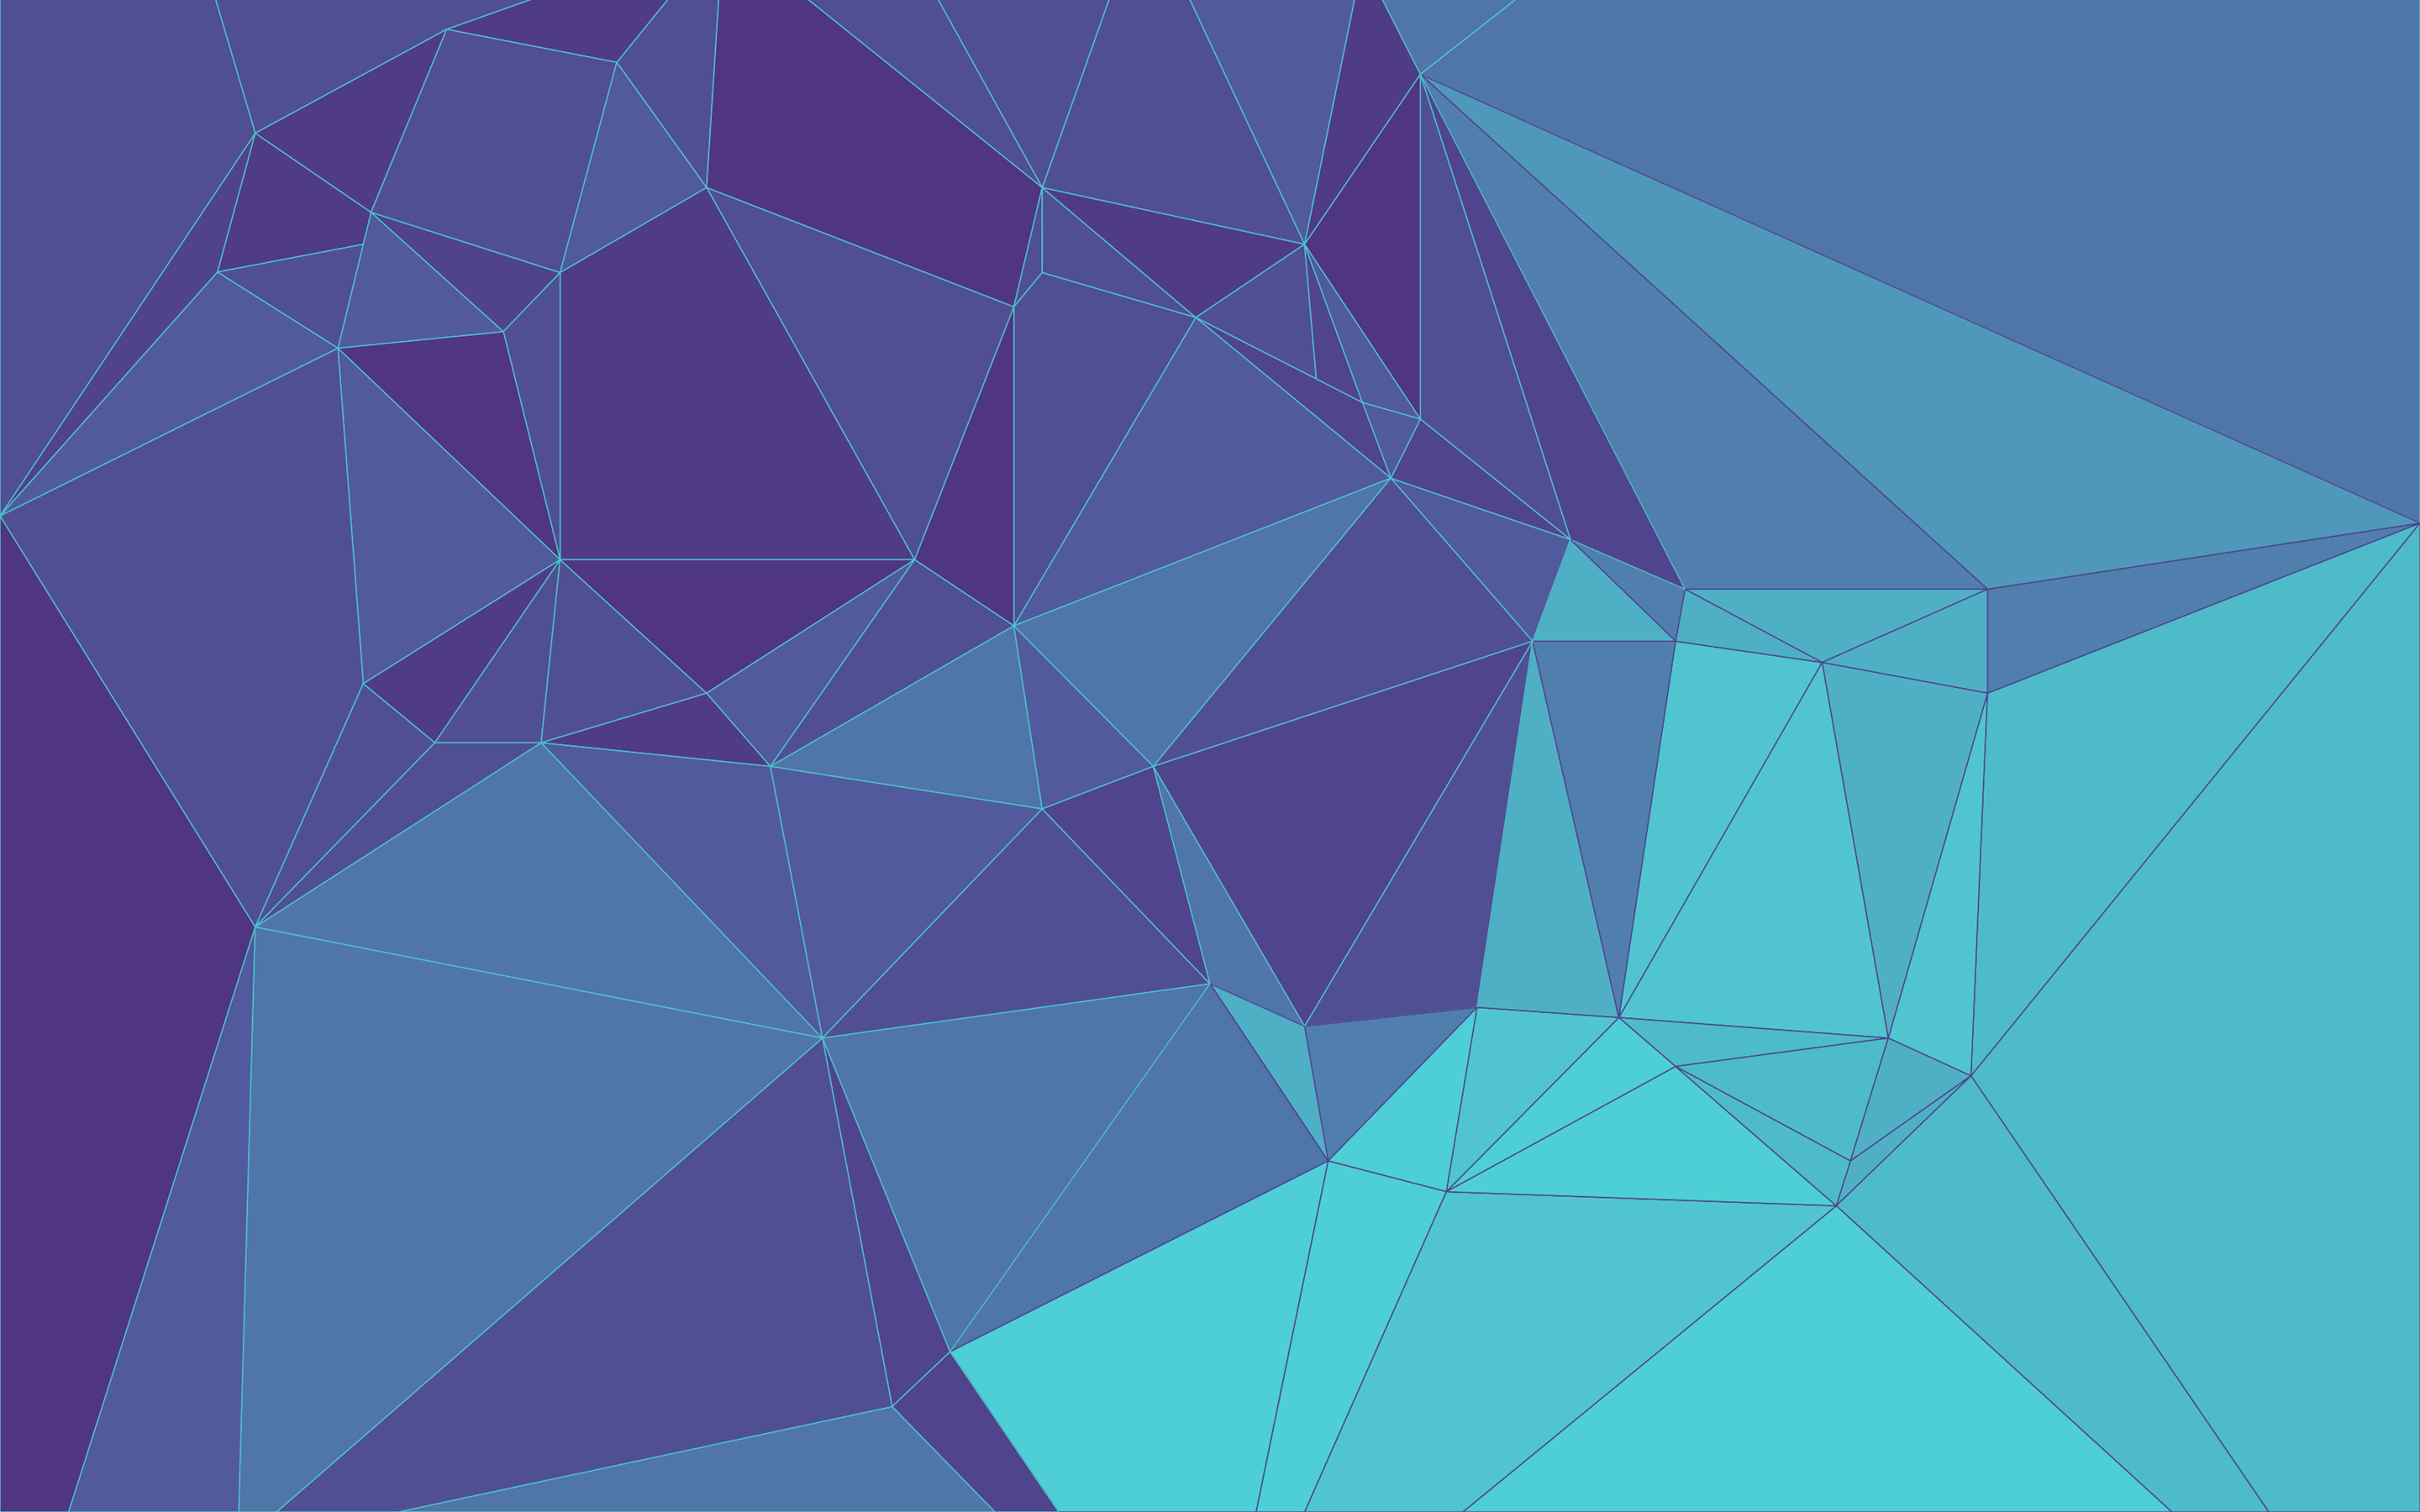 Geometric triangle wallpaper 61 images - Geometric desktop background ...